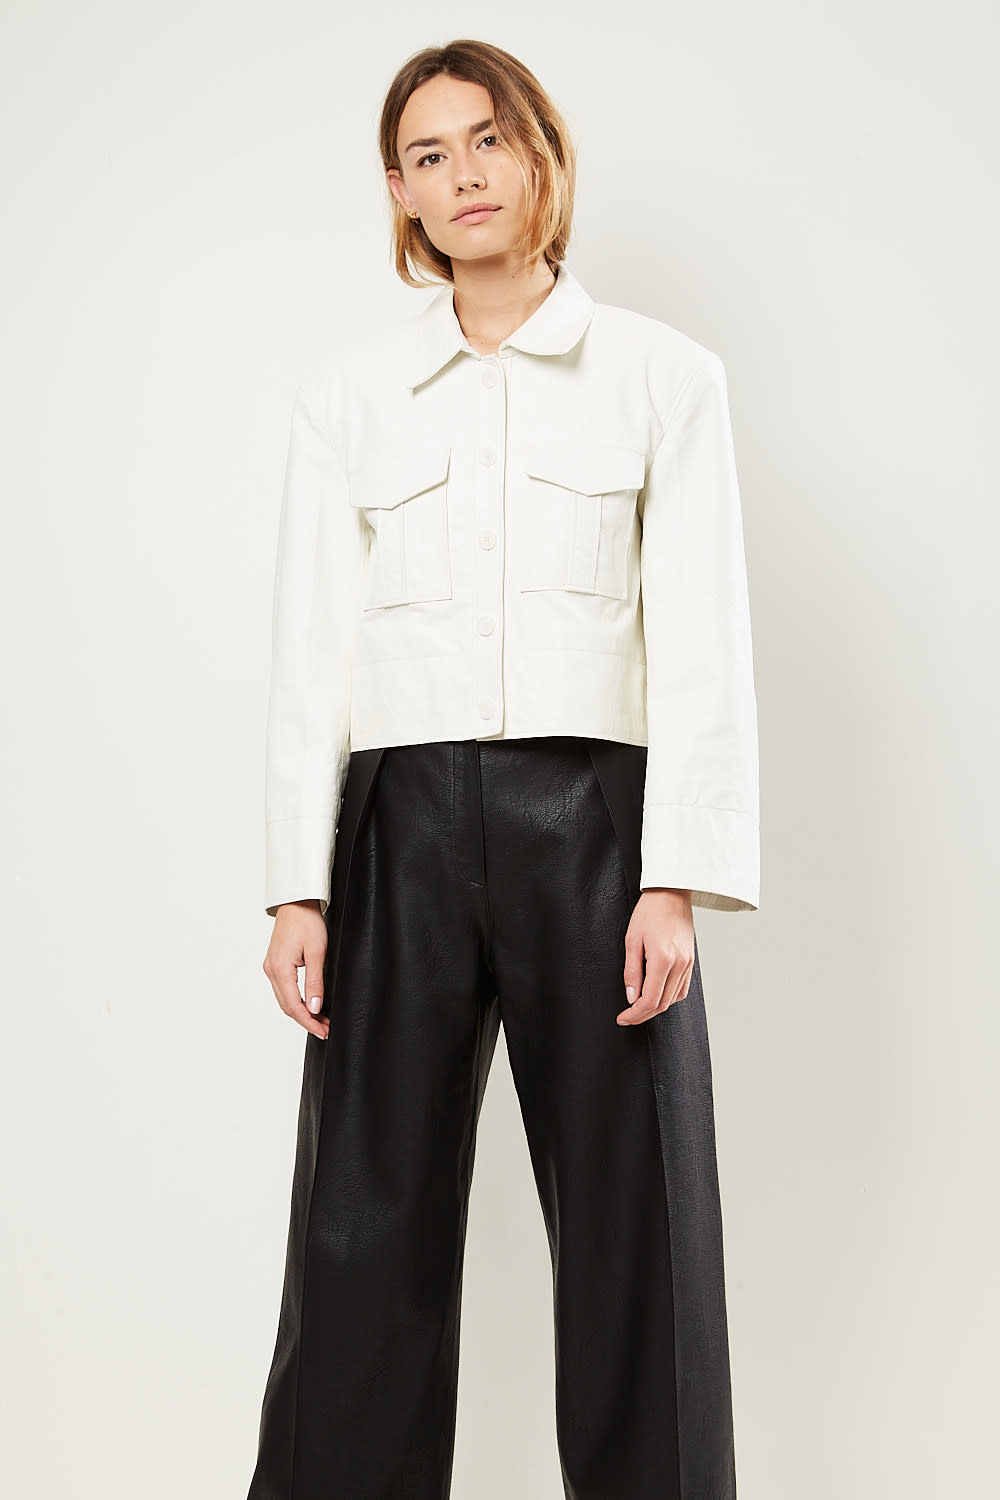 Drae Faux leather button jacket